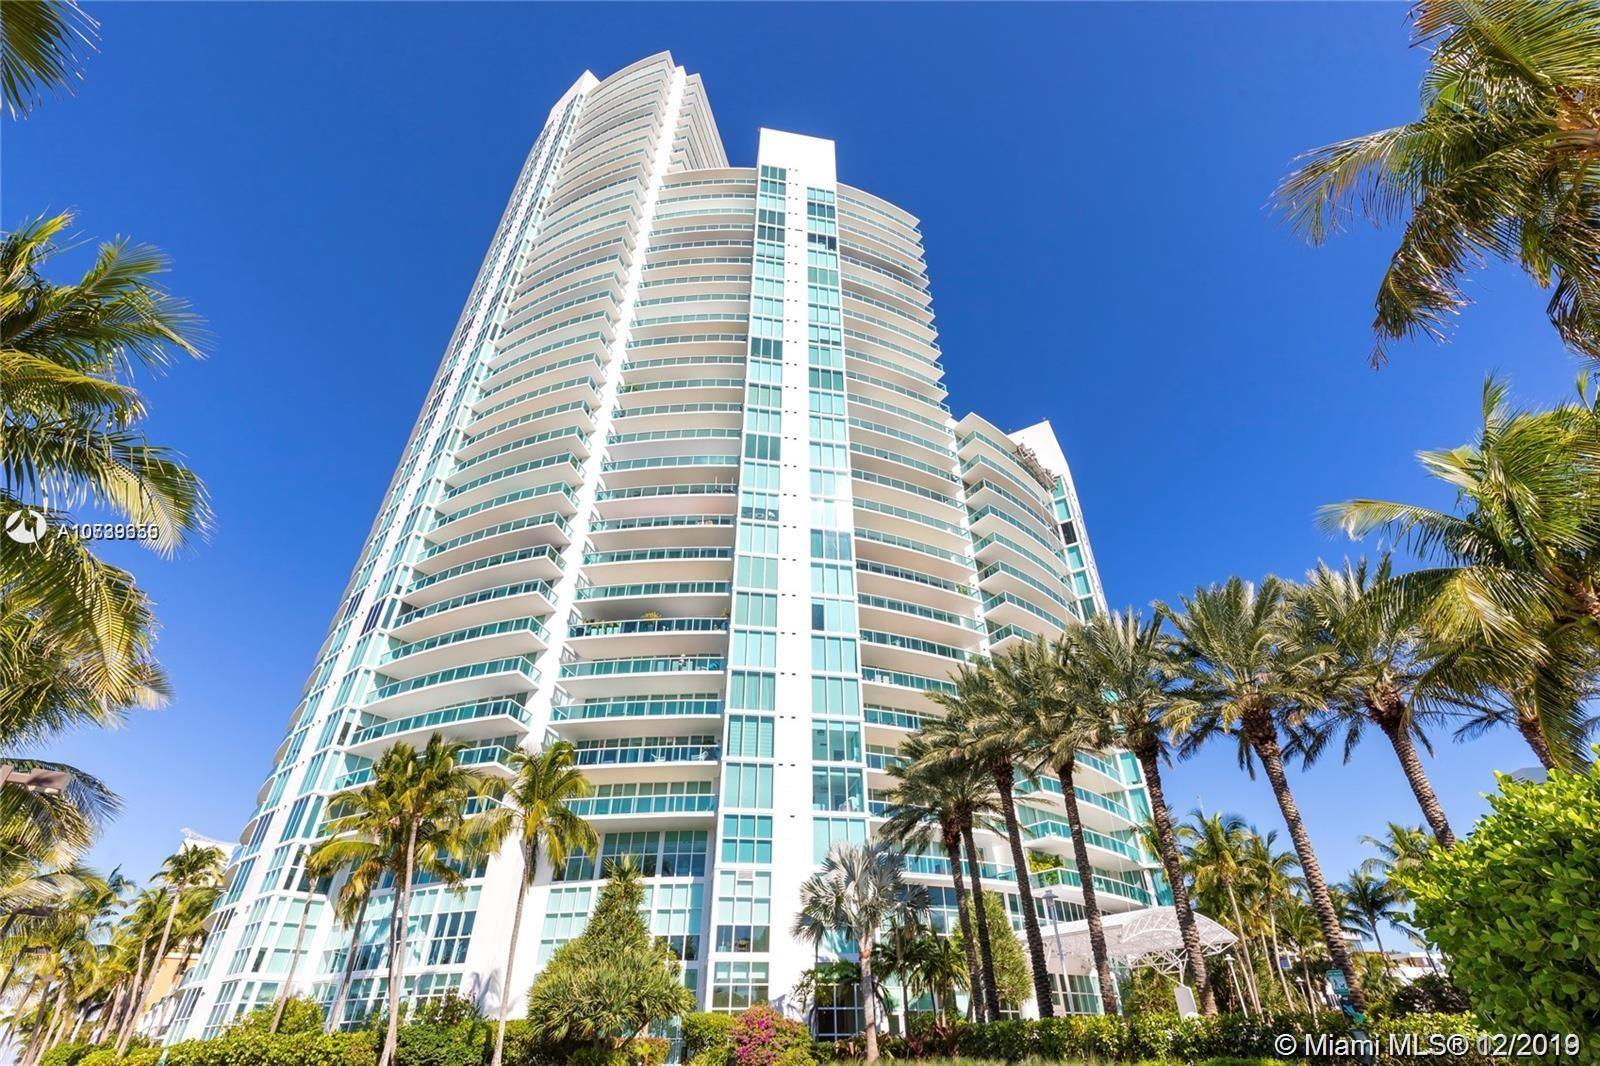 Exquisite South Beach Living now at reach! This stunning 2/2.5 in the coveted Murano At Portofino Tower can now be